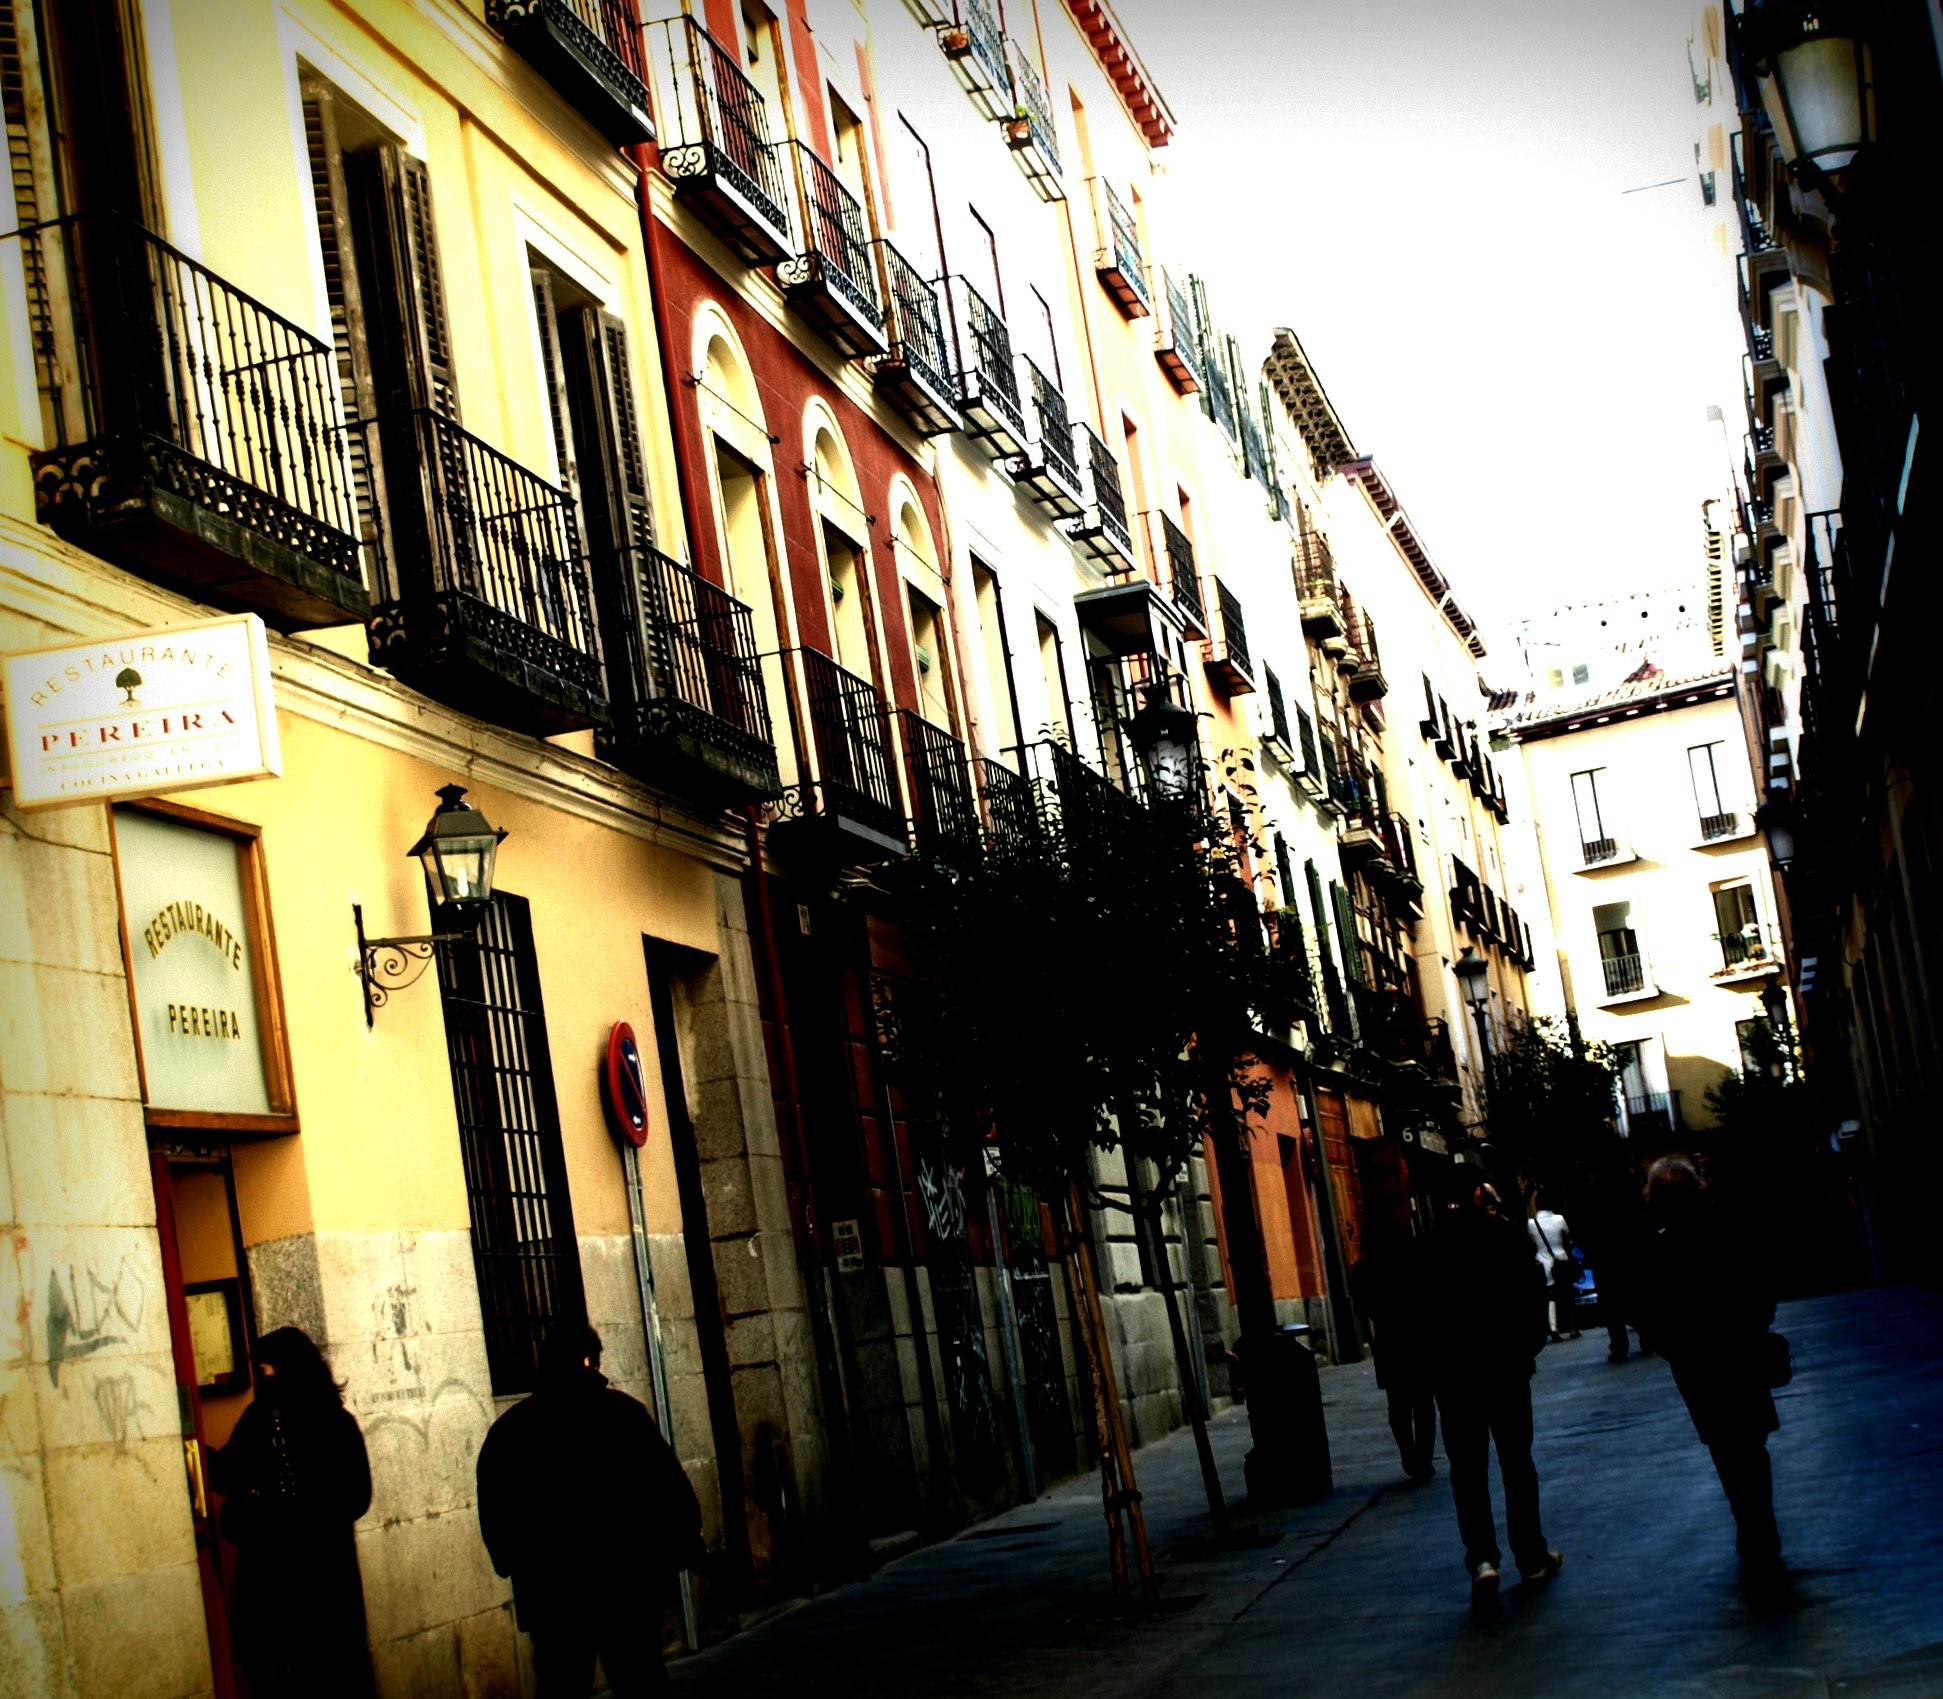 3193911579 3dcc0eb1d4 o Top 10 Things to Do in Madrid on a Backpacker's Budget